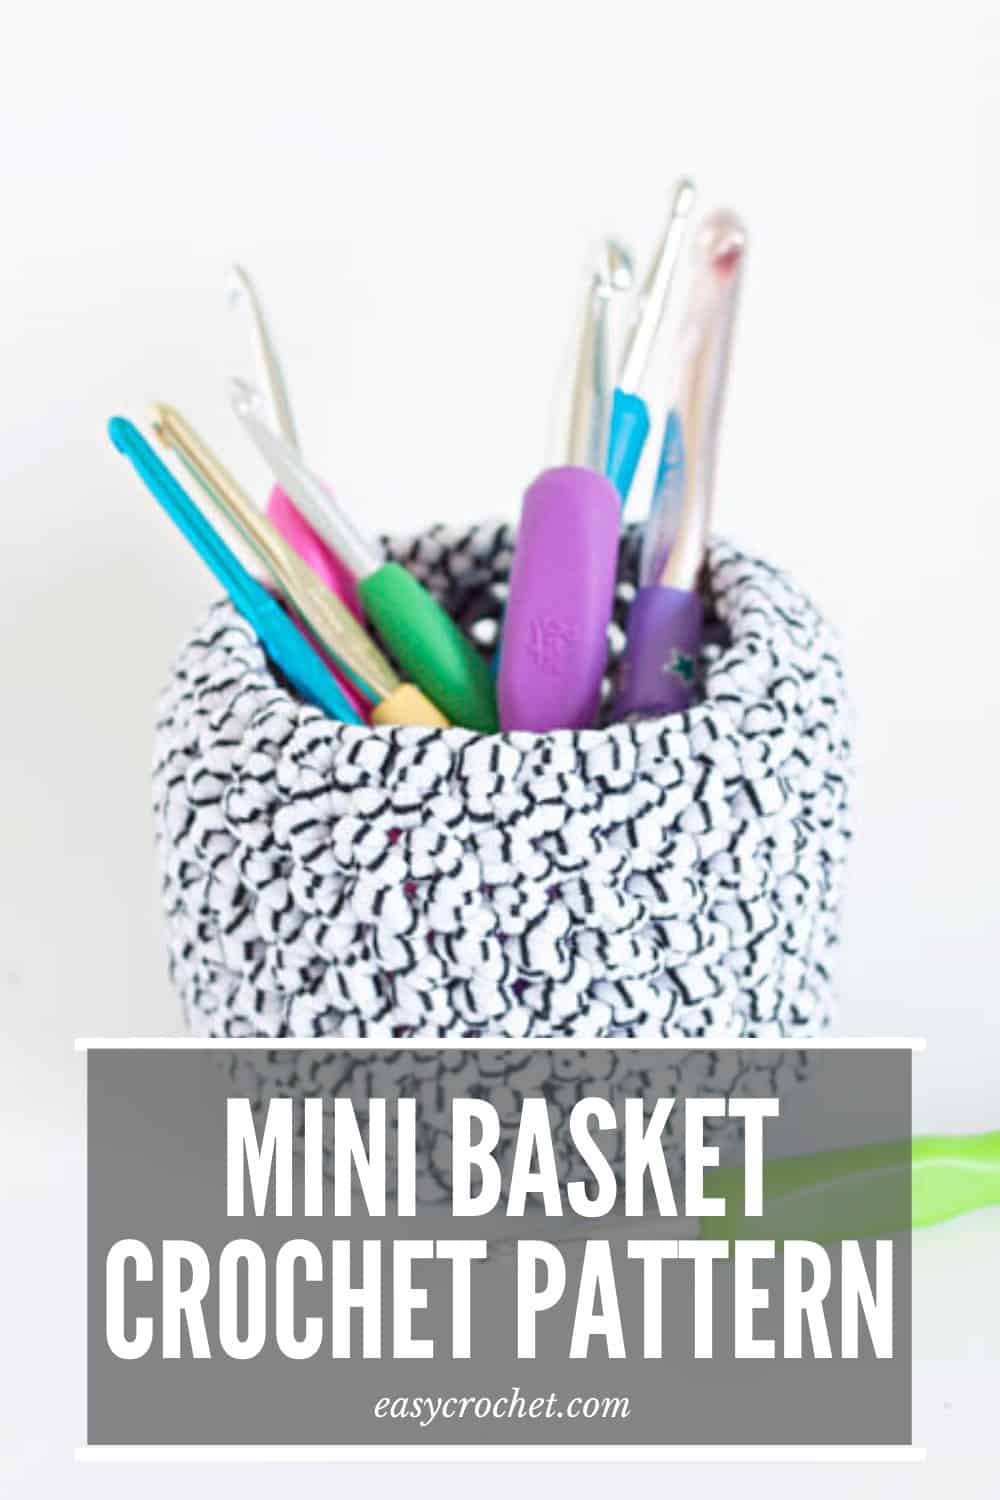 Free & Simple Crochet Mini Basket Pattern - Click to Make this EASY pattern today! Click to Make now or PIN to make later! Find this pattern at easycrochet.com via @easycrochetcom